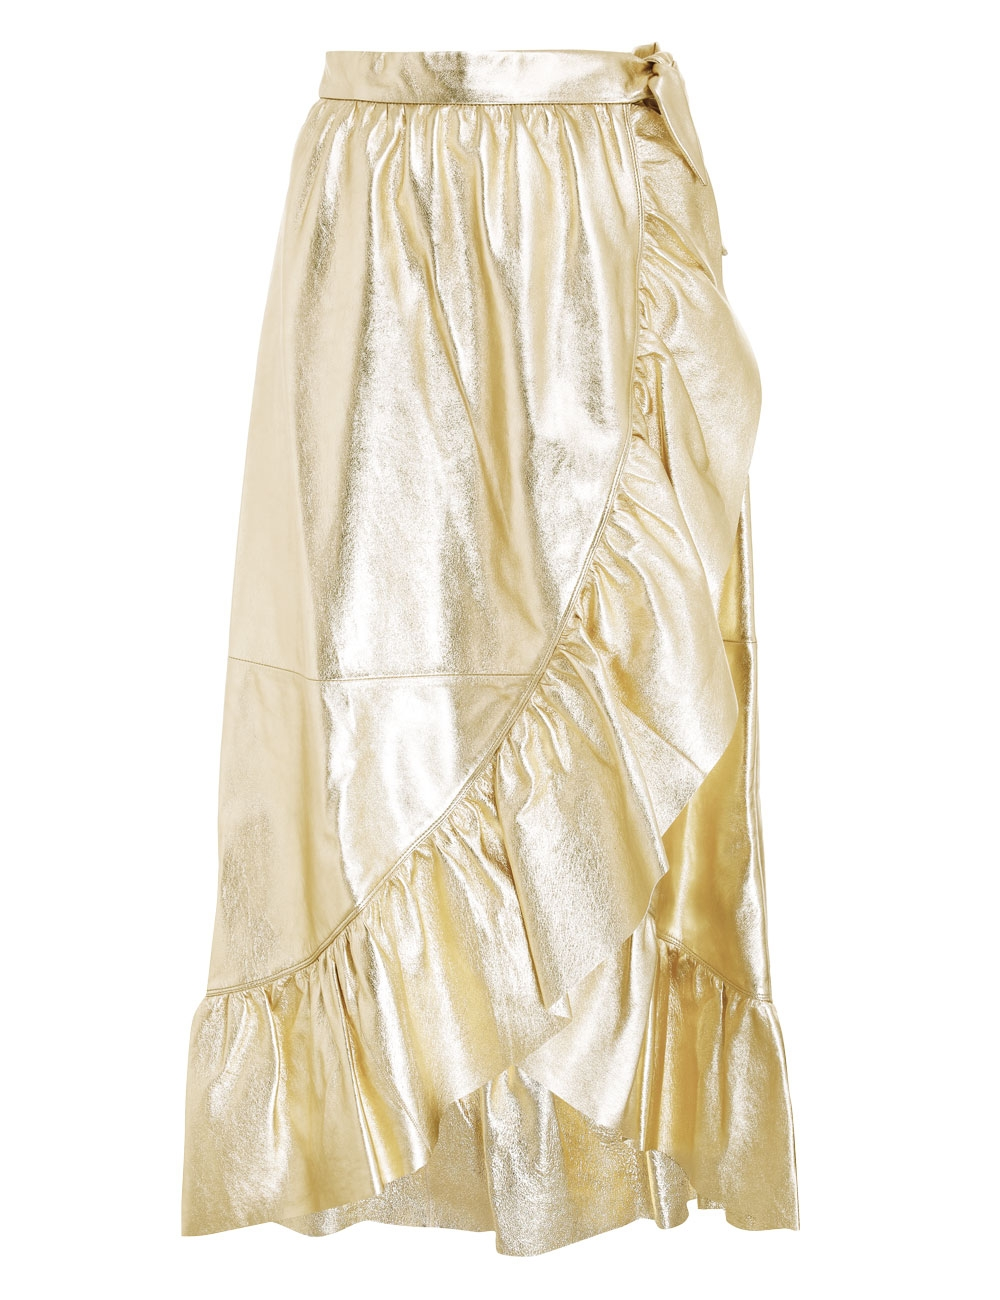 Ladybeetle Gold Leather Skirt